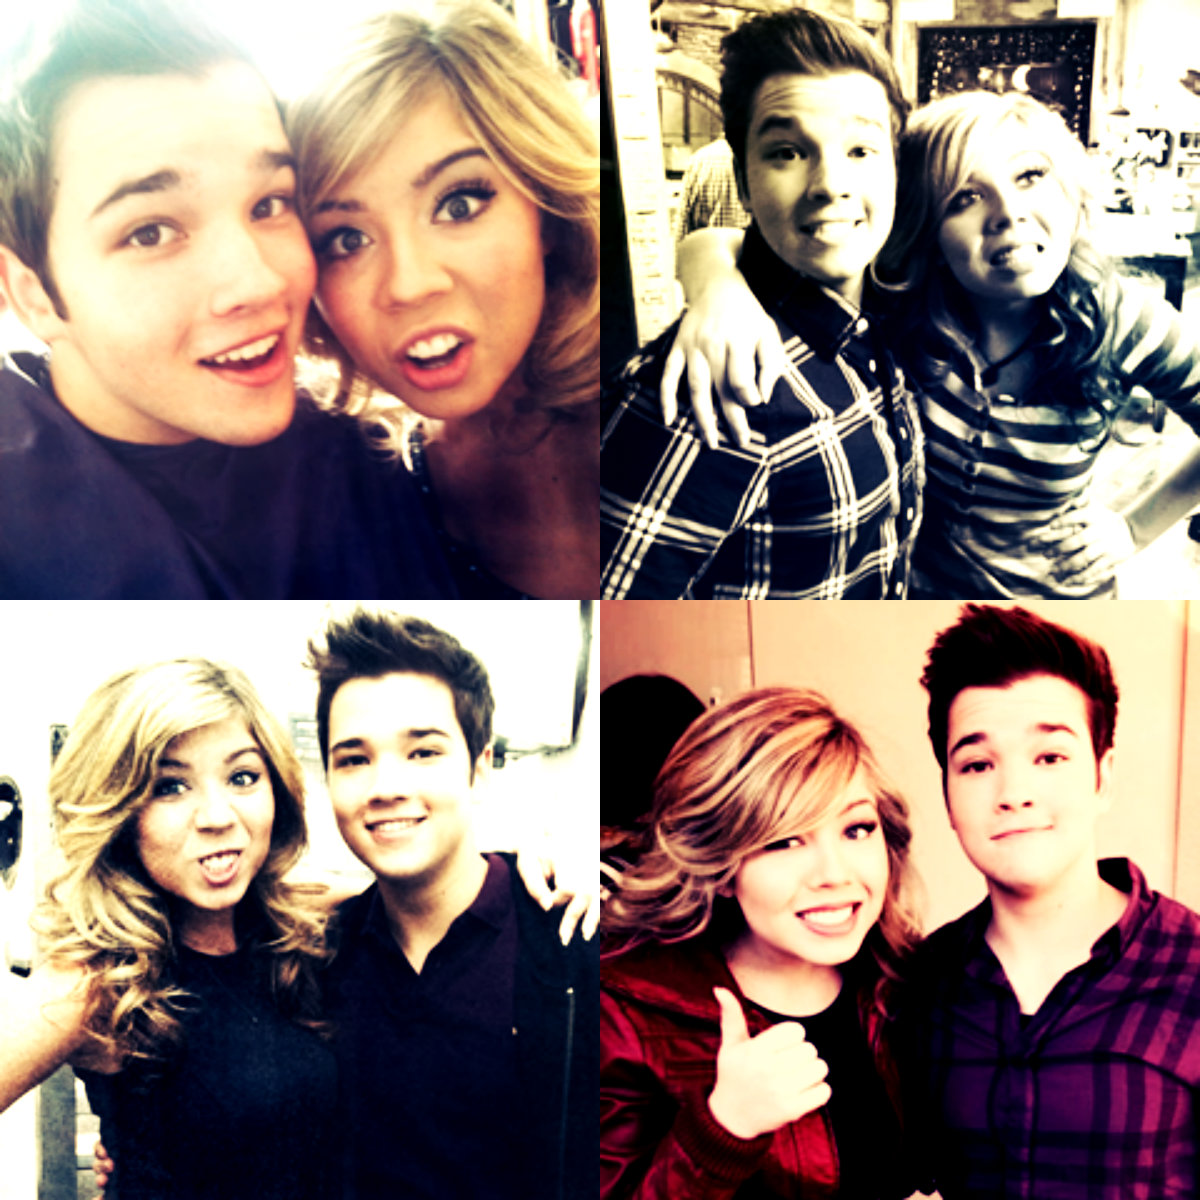 nathan kress and miranda cosgrove 2015. nathan kress and miranda cosgrove 2015